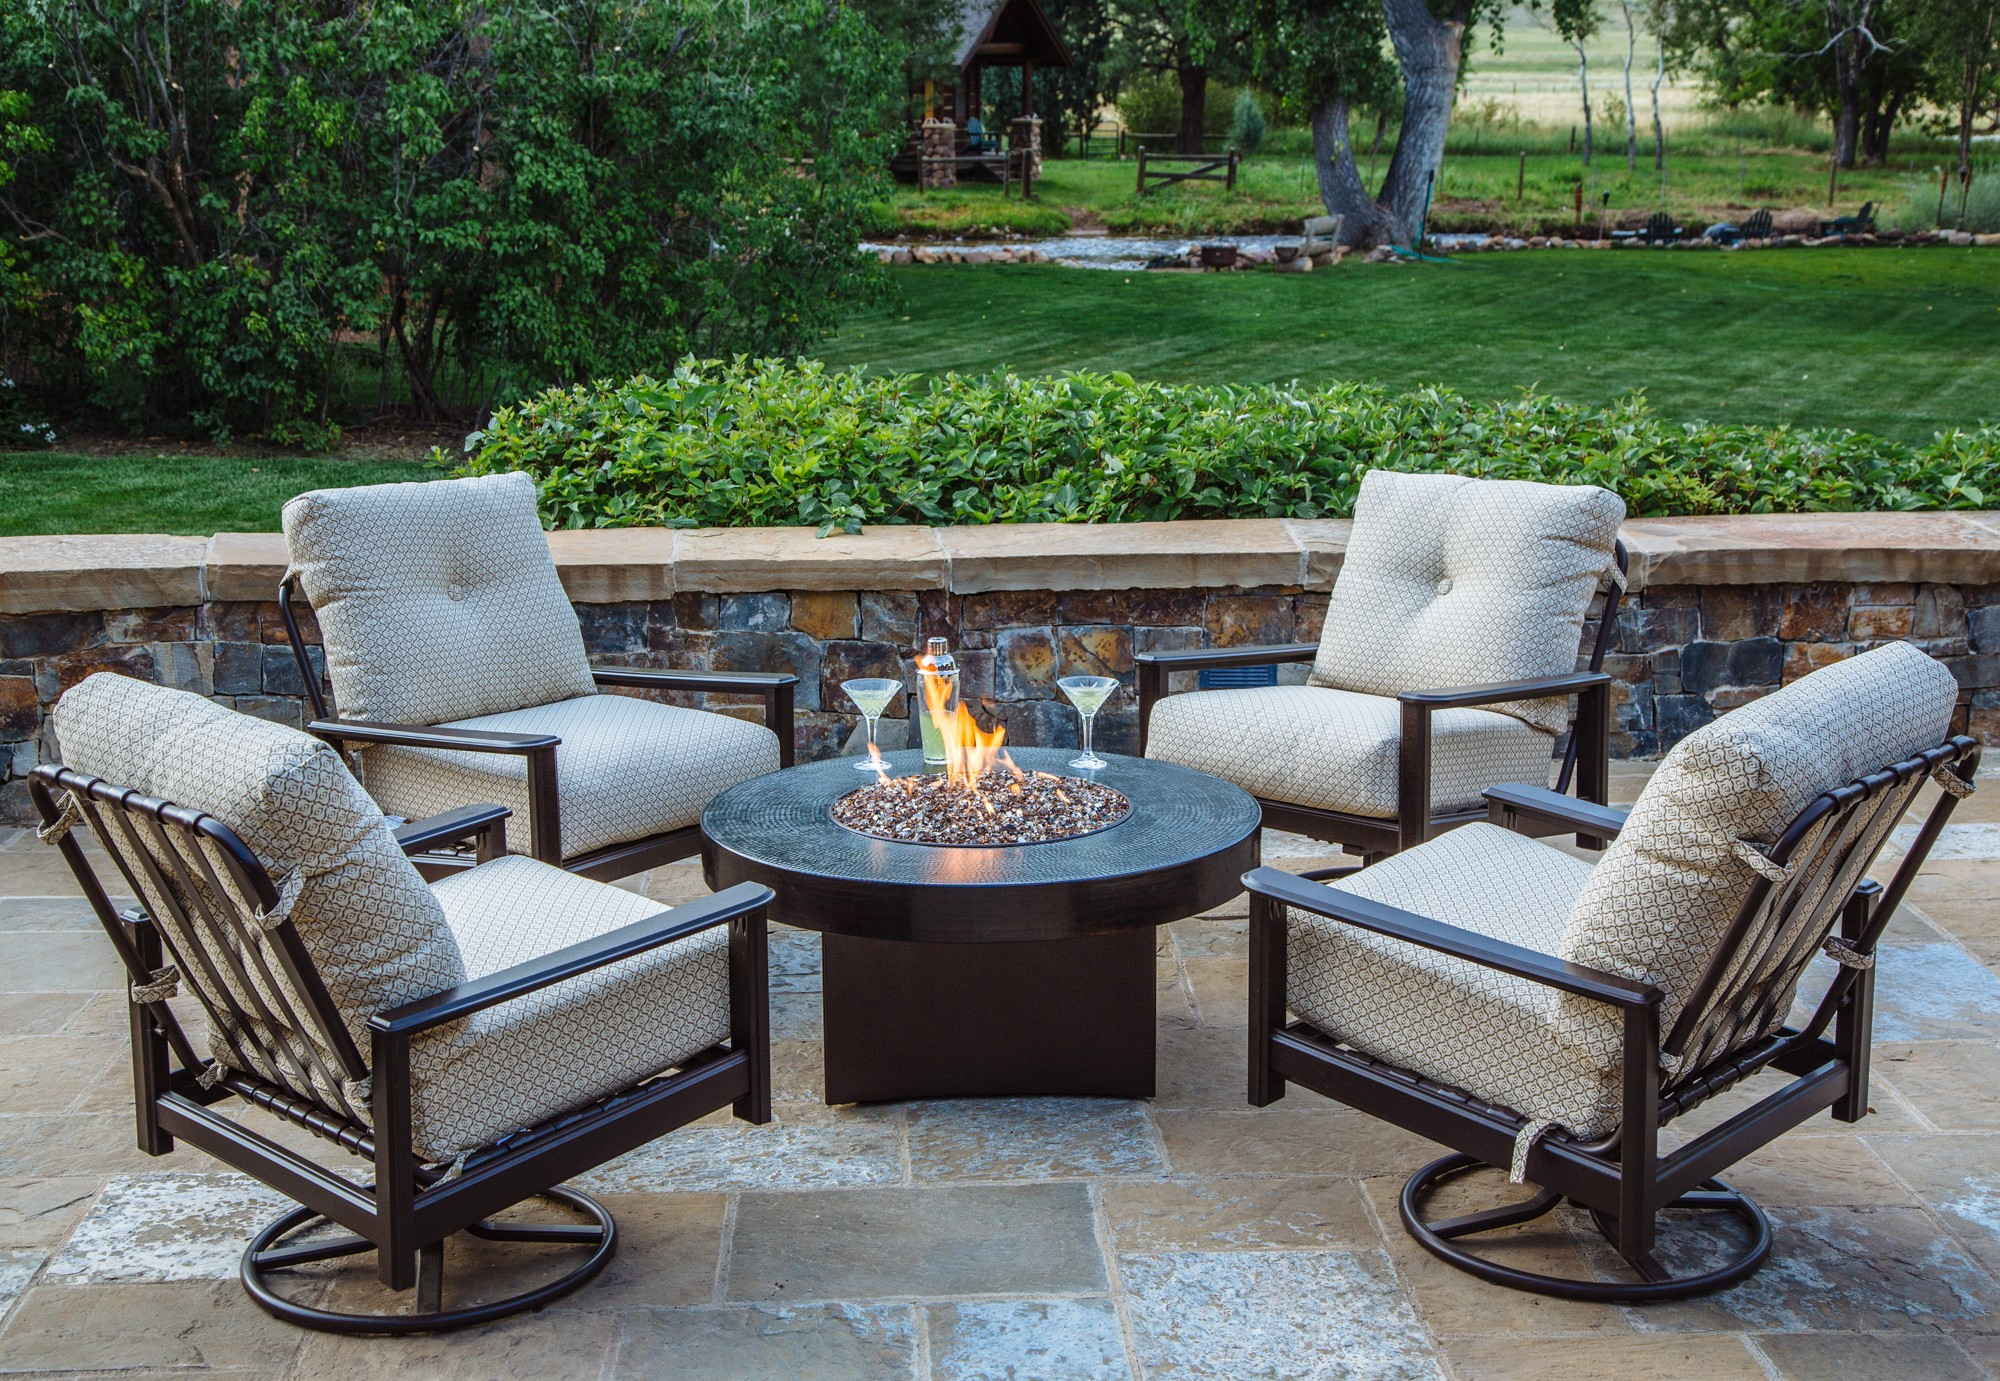 Copper Fire Pit Table Hammered Copper Fire Pit Table pertaining to dimensions 2000 X 1381